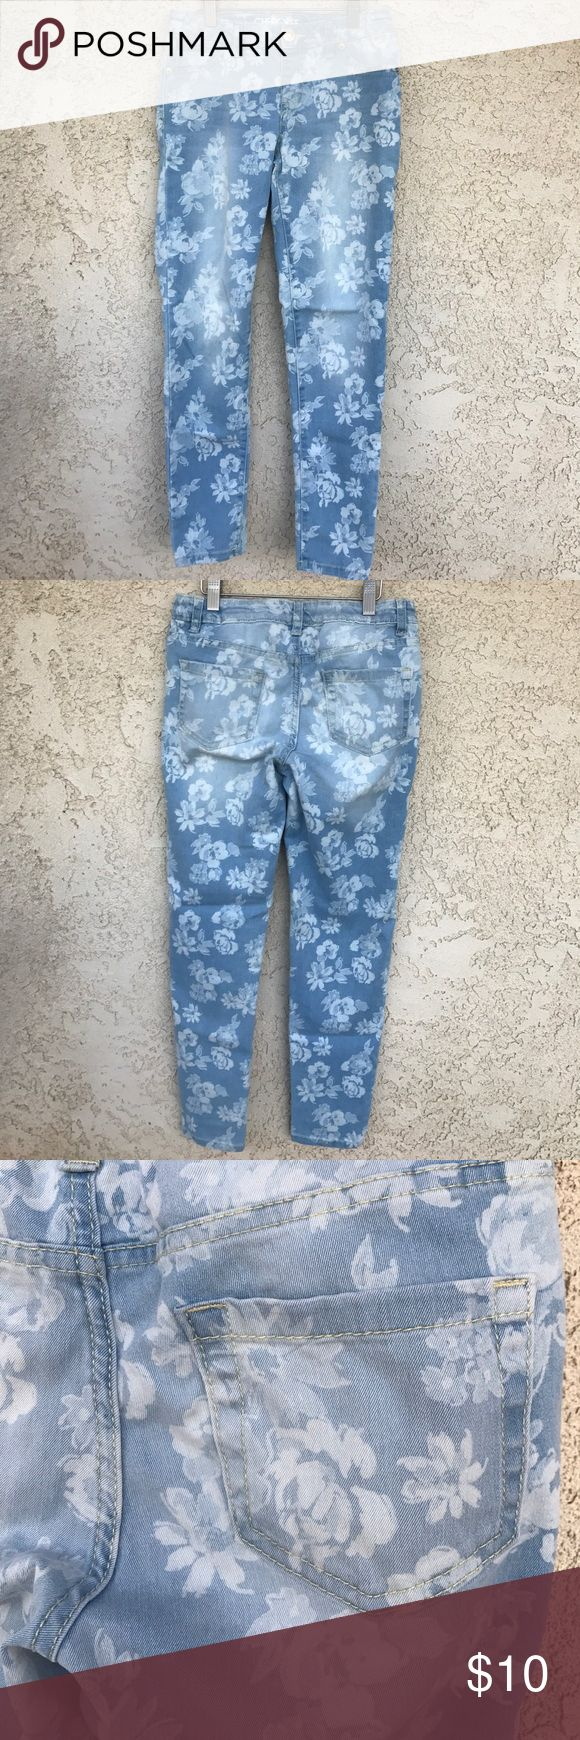 """Cherokee Girl Jeggins Flower print jeggins with adjustable waist. Skinny Fit.                                                 Rise: 9.5""""  Inseam: 26.5"""" Cherokee Bottoms Jeans"""